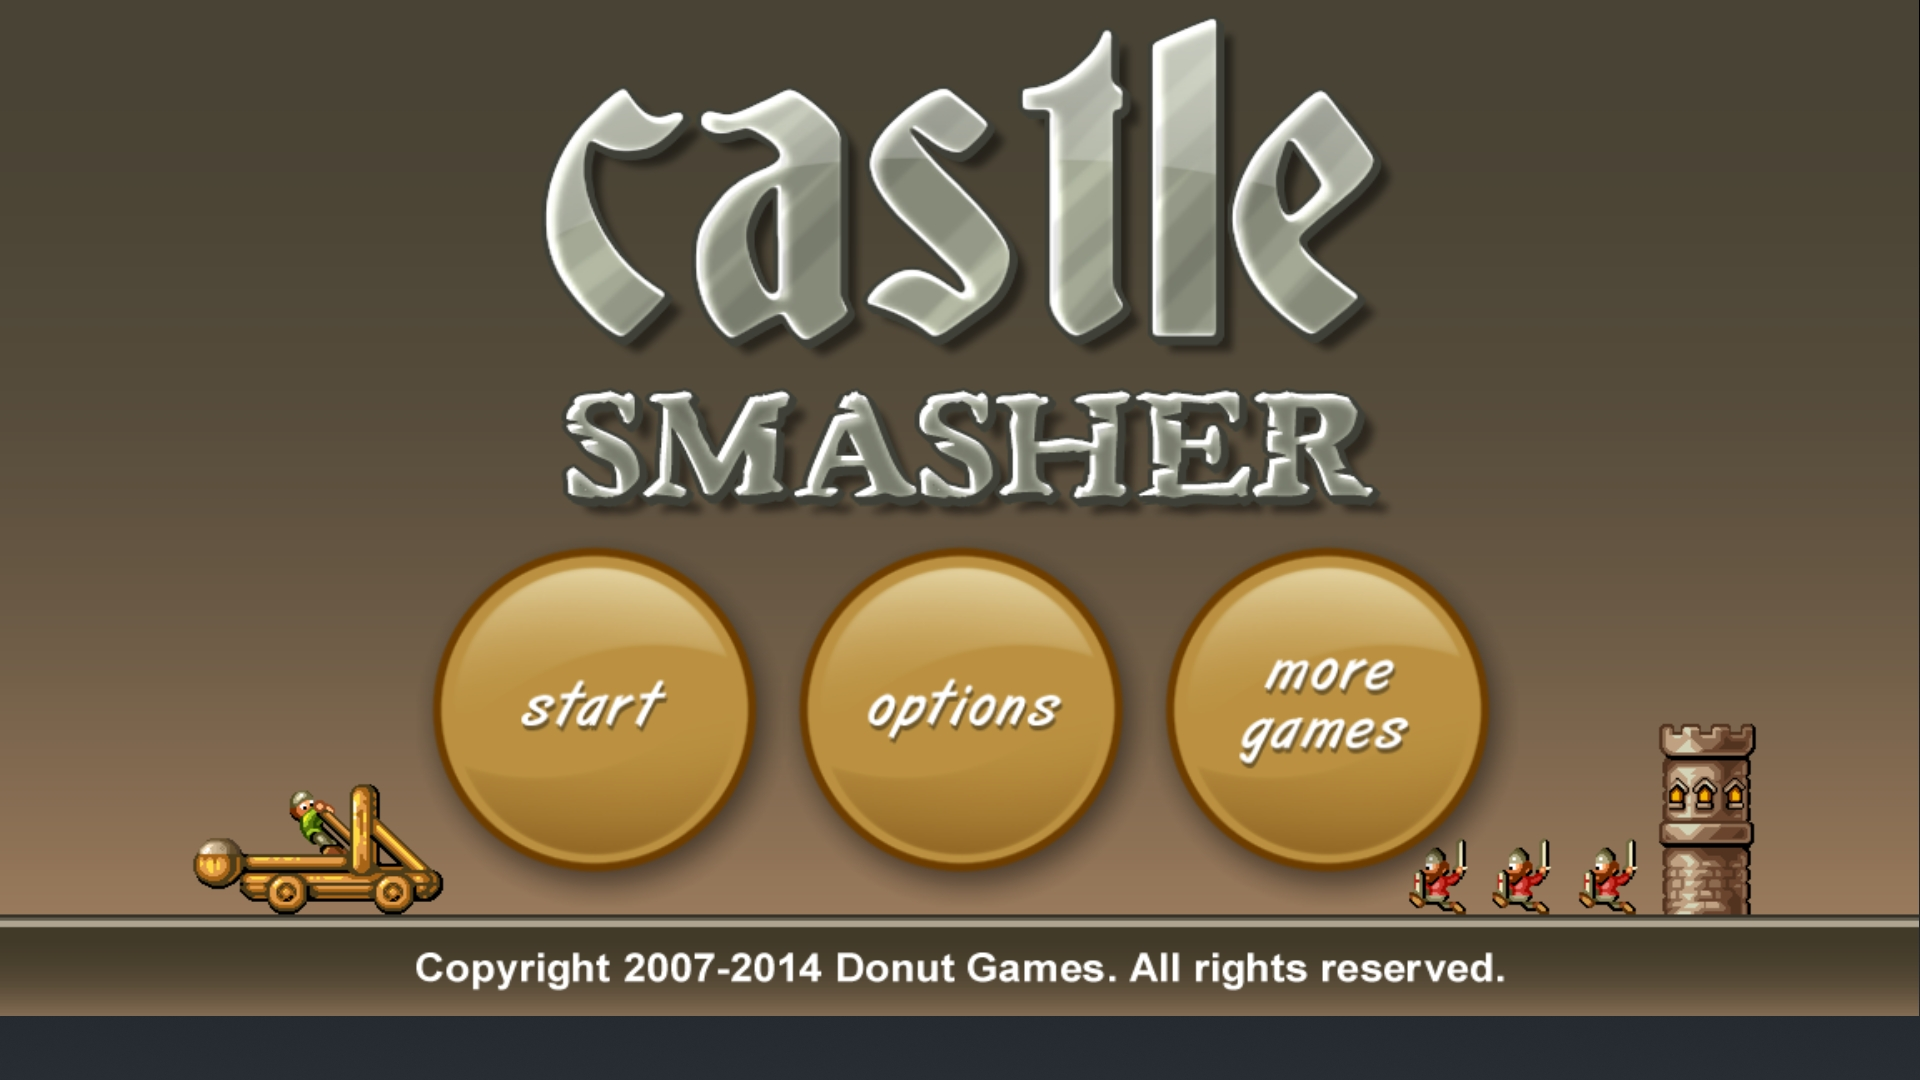 Bamse: Castle Smasher: Challenges: 31 Wings of Eagles (Android) 83 points on 2019-09-06 05:52:47